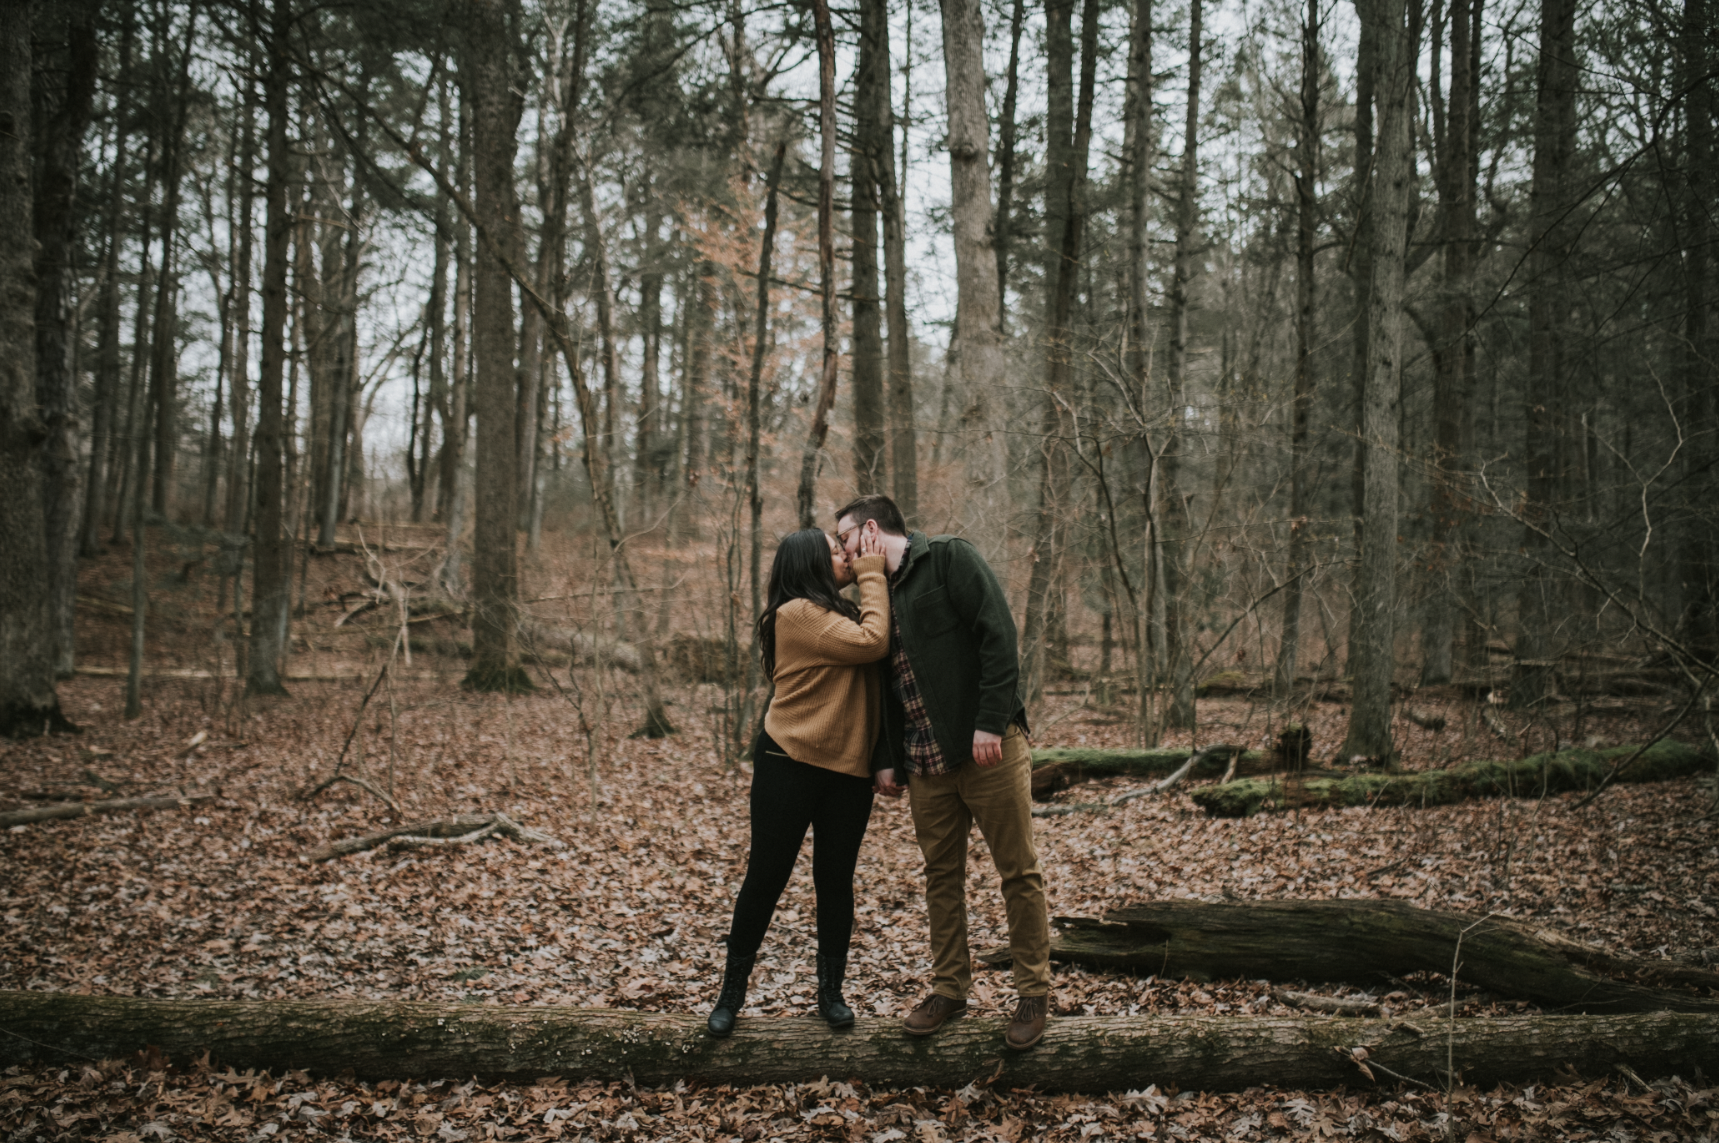 matt-natalia-winter-woods-engagement-session-pennsylvania-wedding-photographer-19